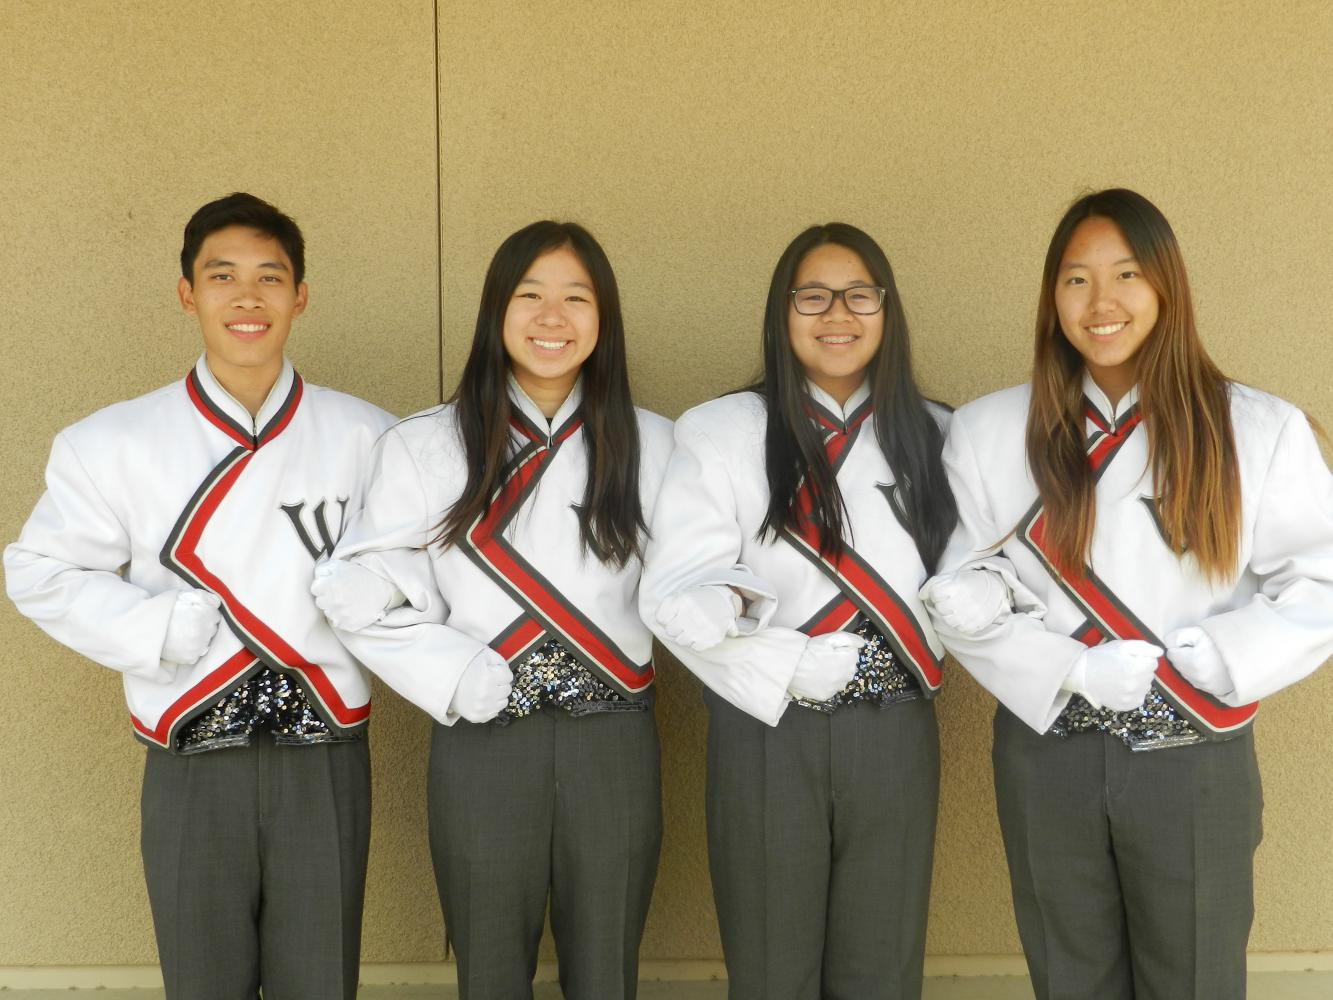 Senior drum majors (left to right) Malcolm Tsay, Jody Lin, Sabrina Wang, and Margaret Lee pose in  in their distinct drum major uniforms.